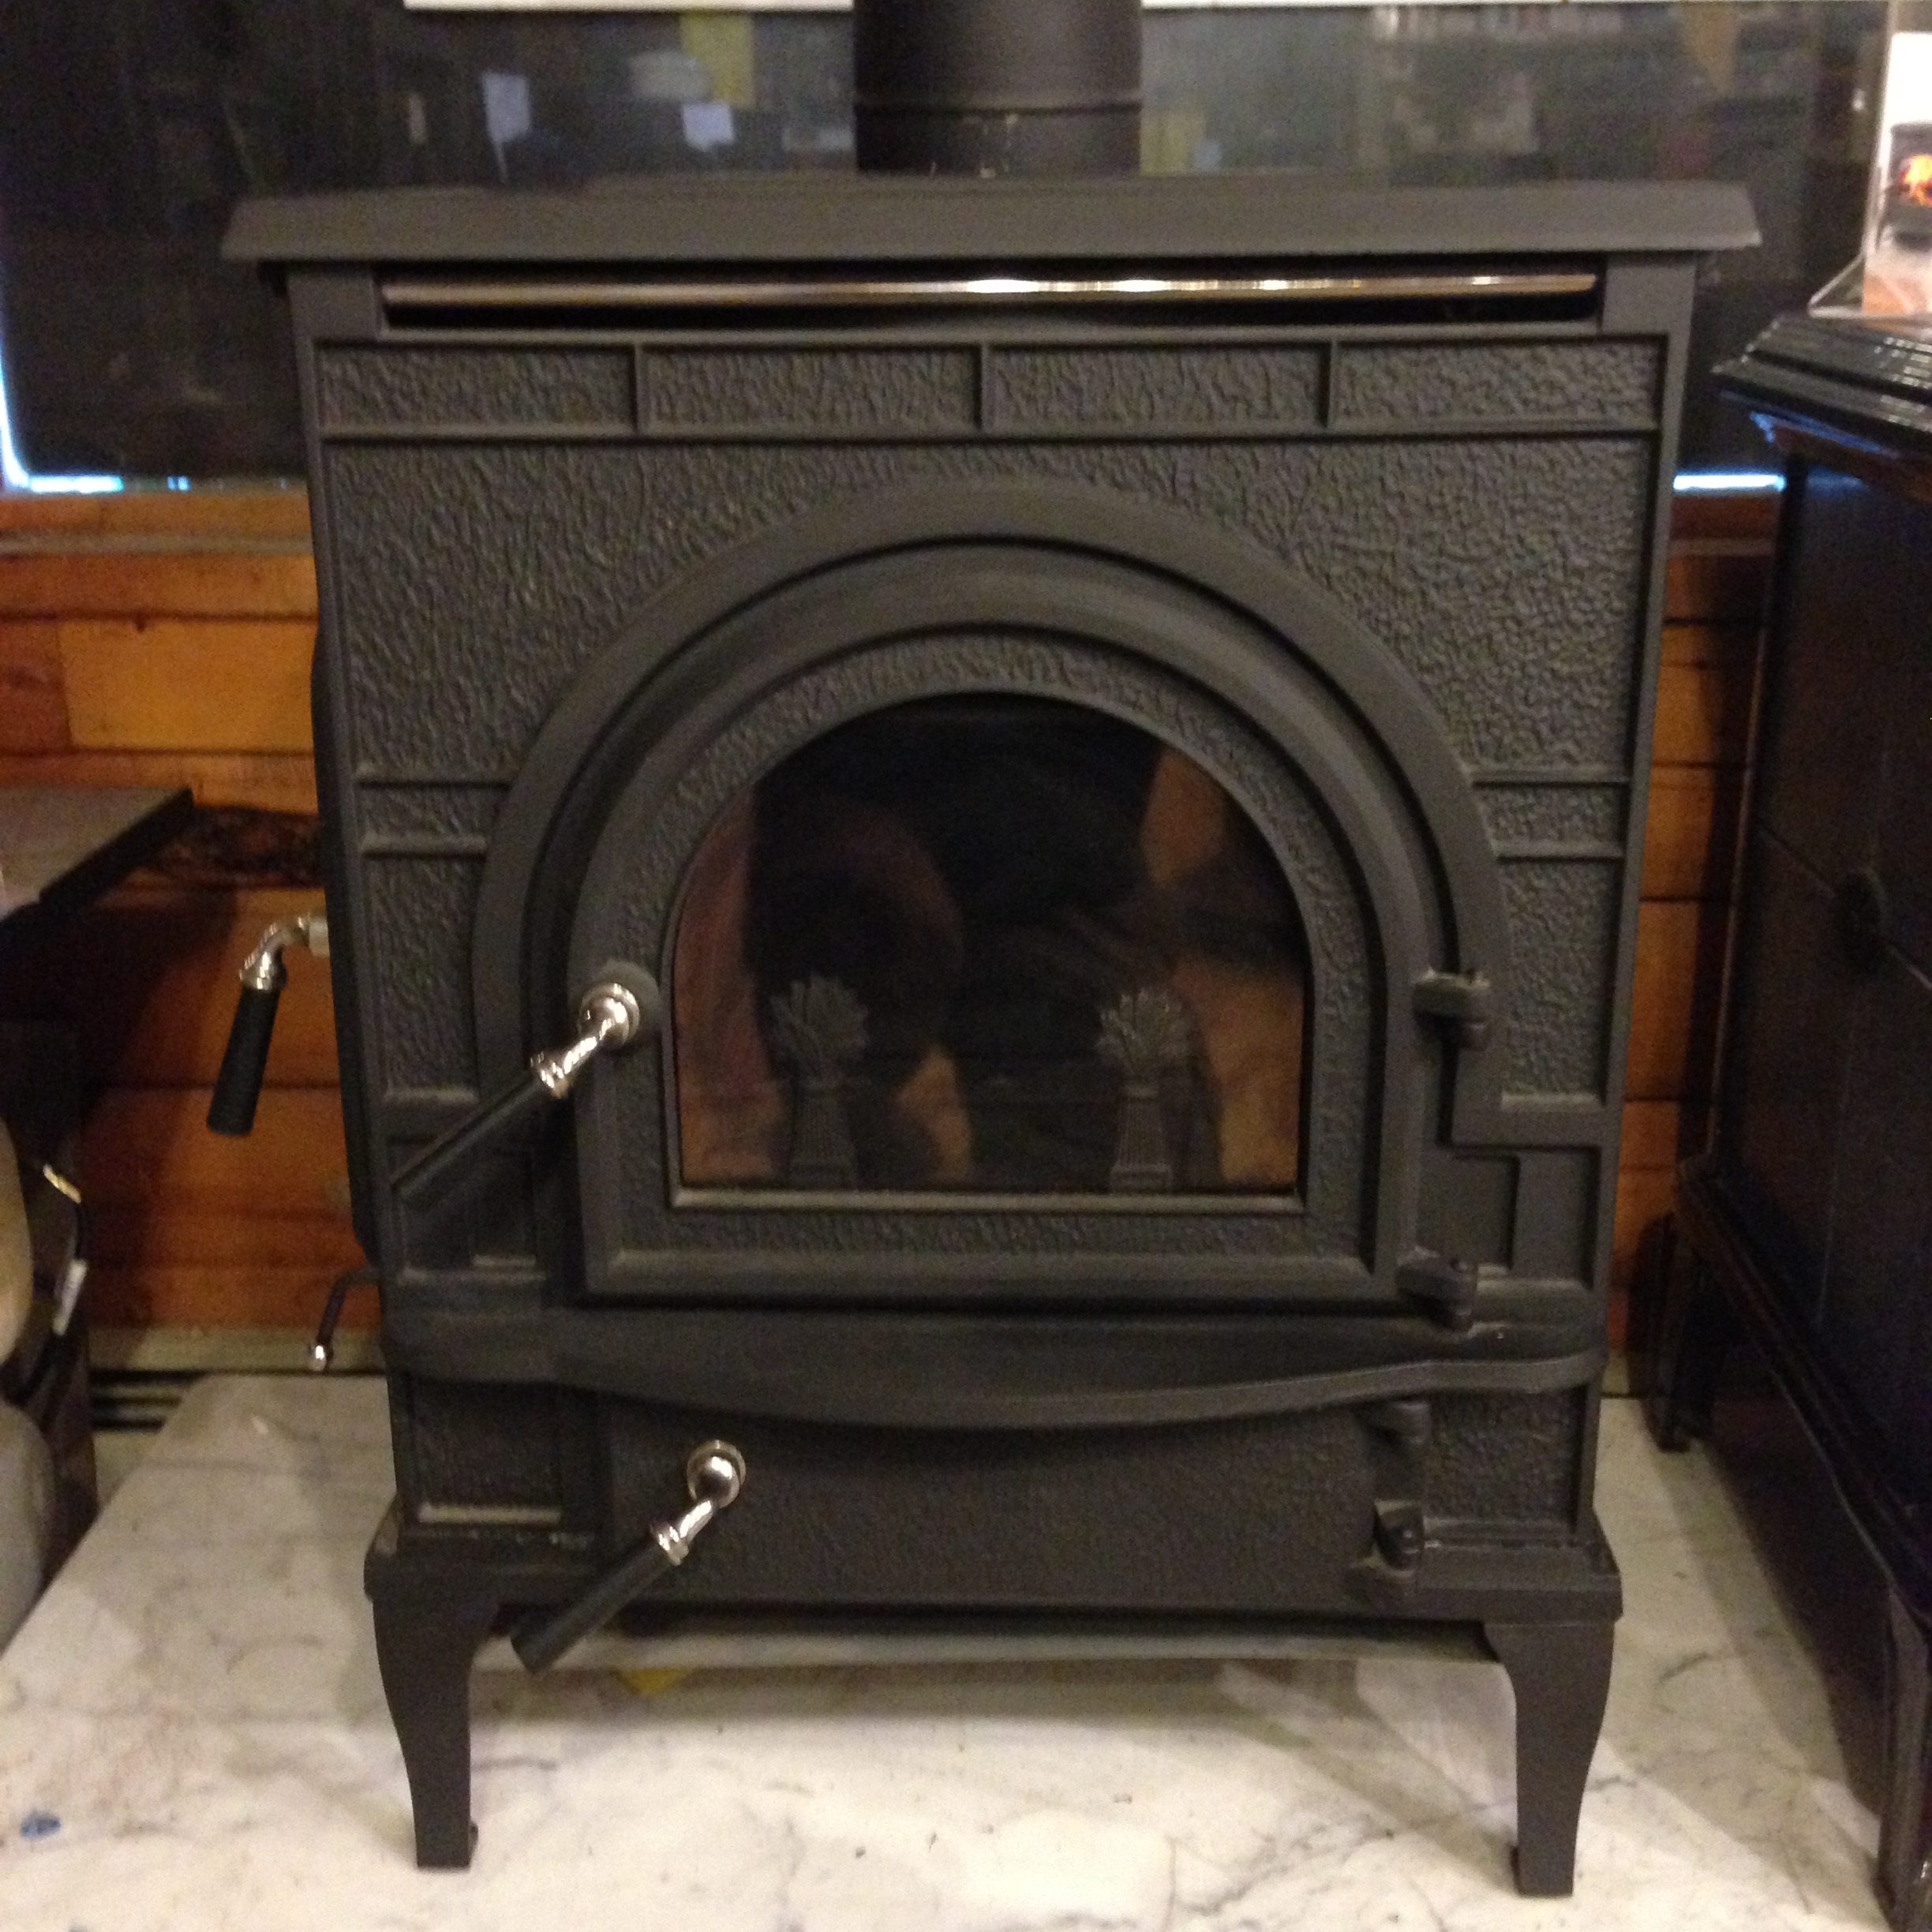 Dutchwest Small Catalytic Wood Stove - Display